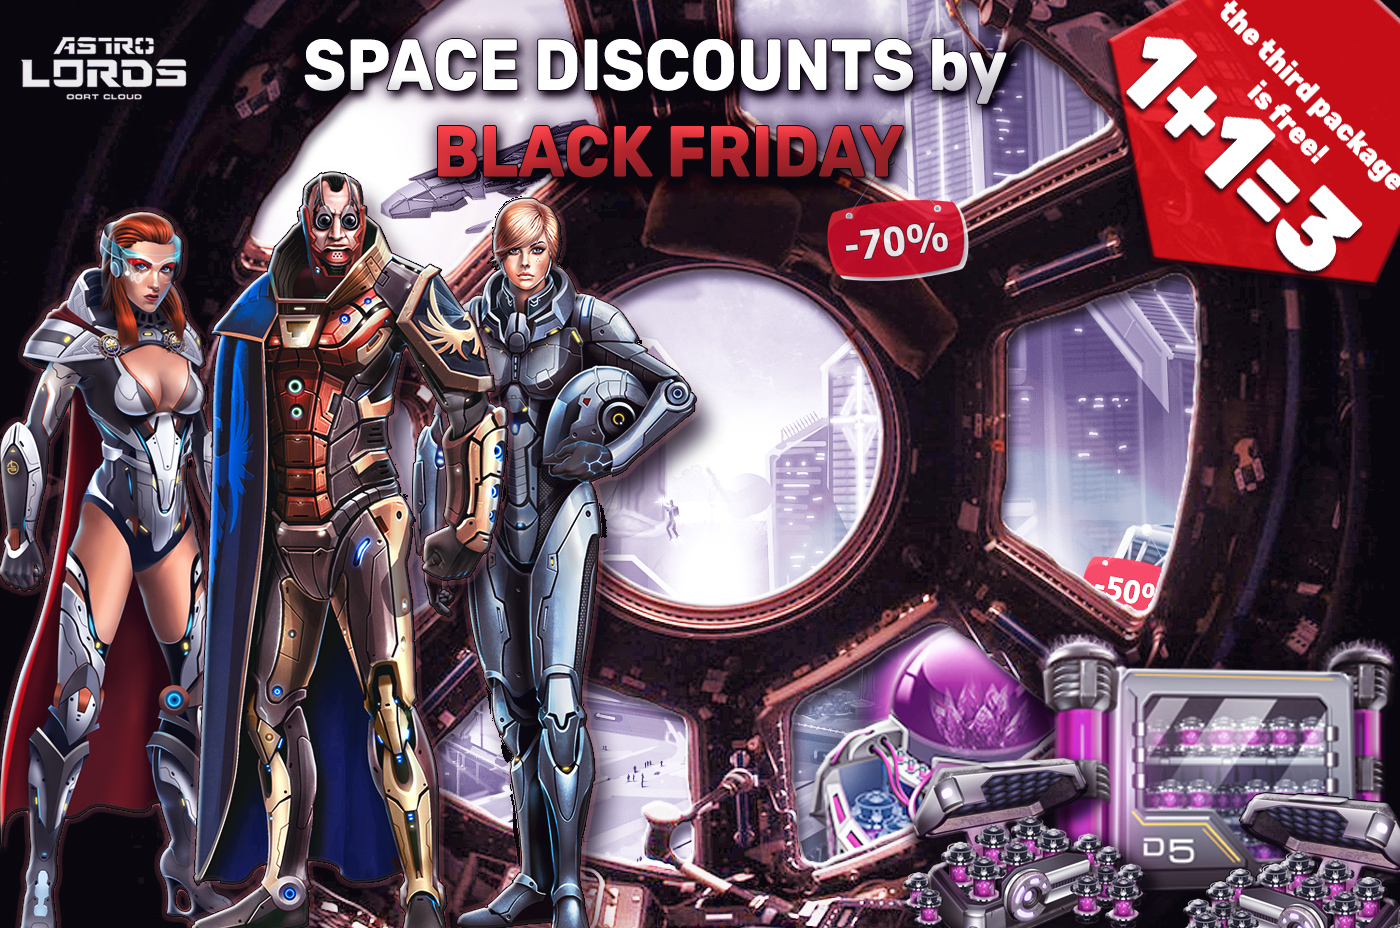 black friday 2019 astrolords lord game mmo space sale discount bonus strategy